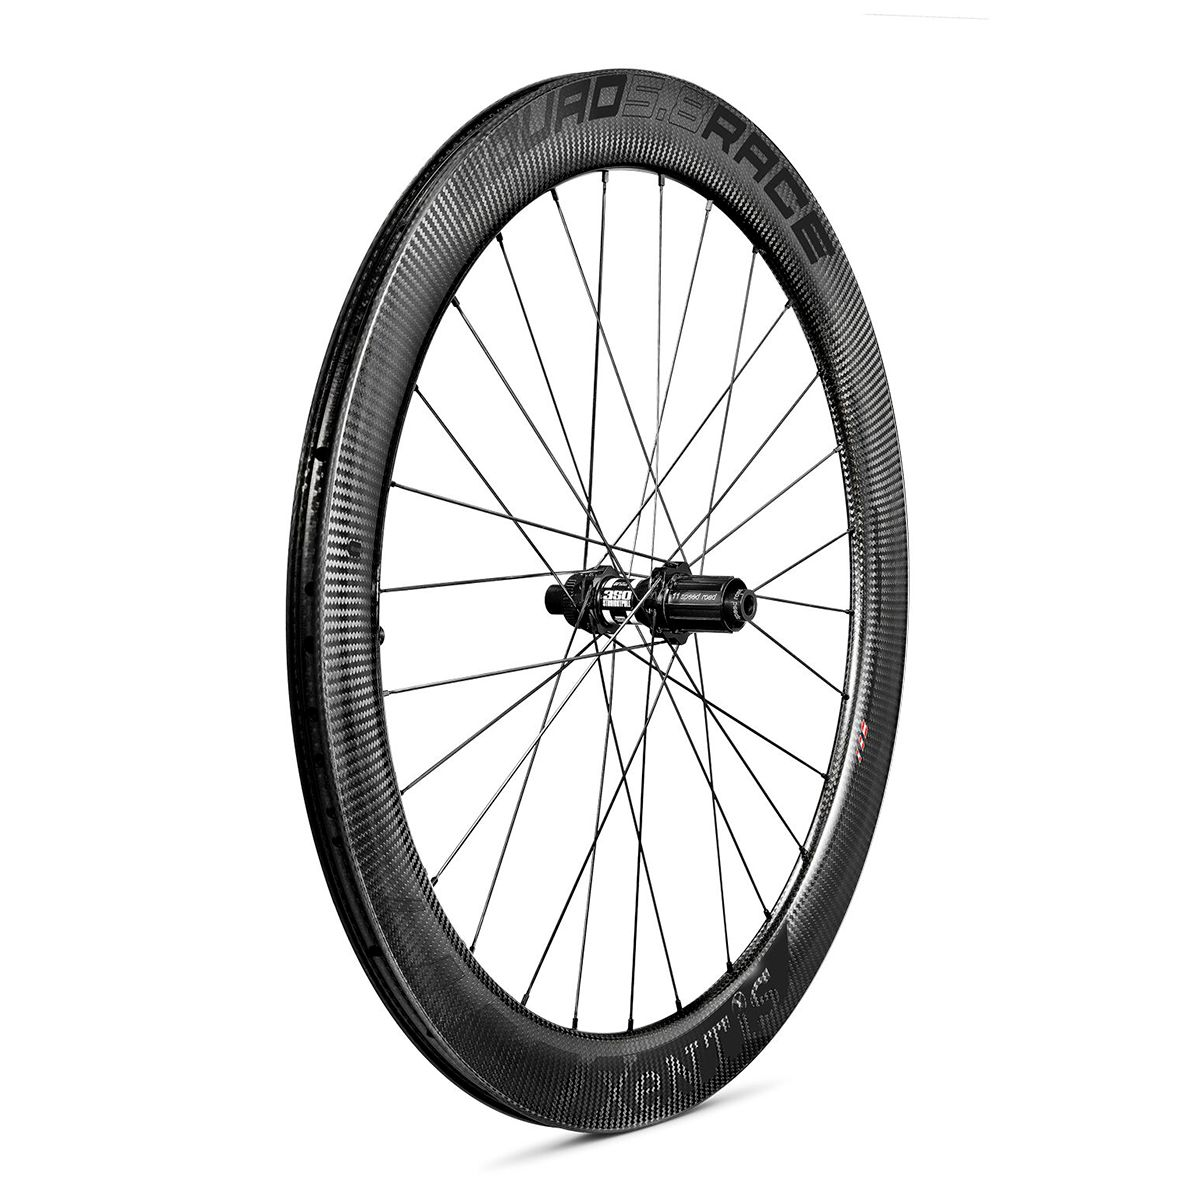 "SQUAD 5.8 RACE Disc Carbon Rear Wheel 28""/700C Clincher – Disc Brake"